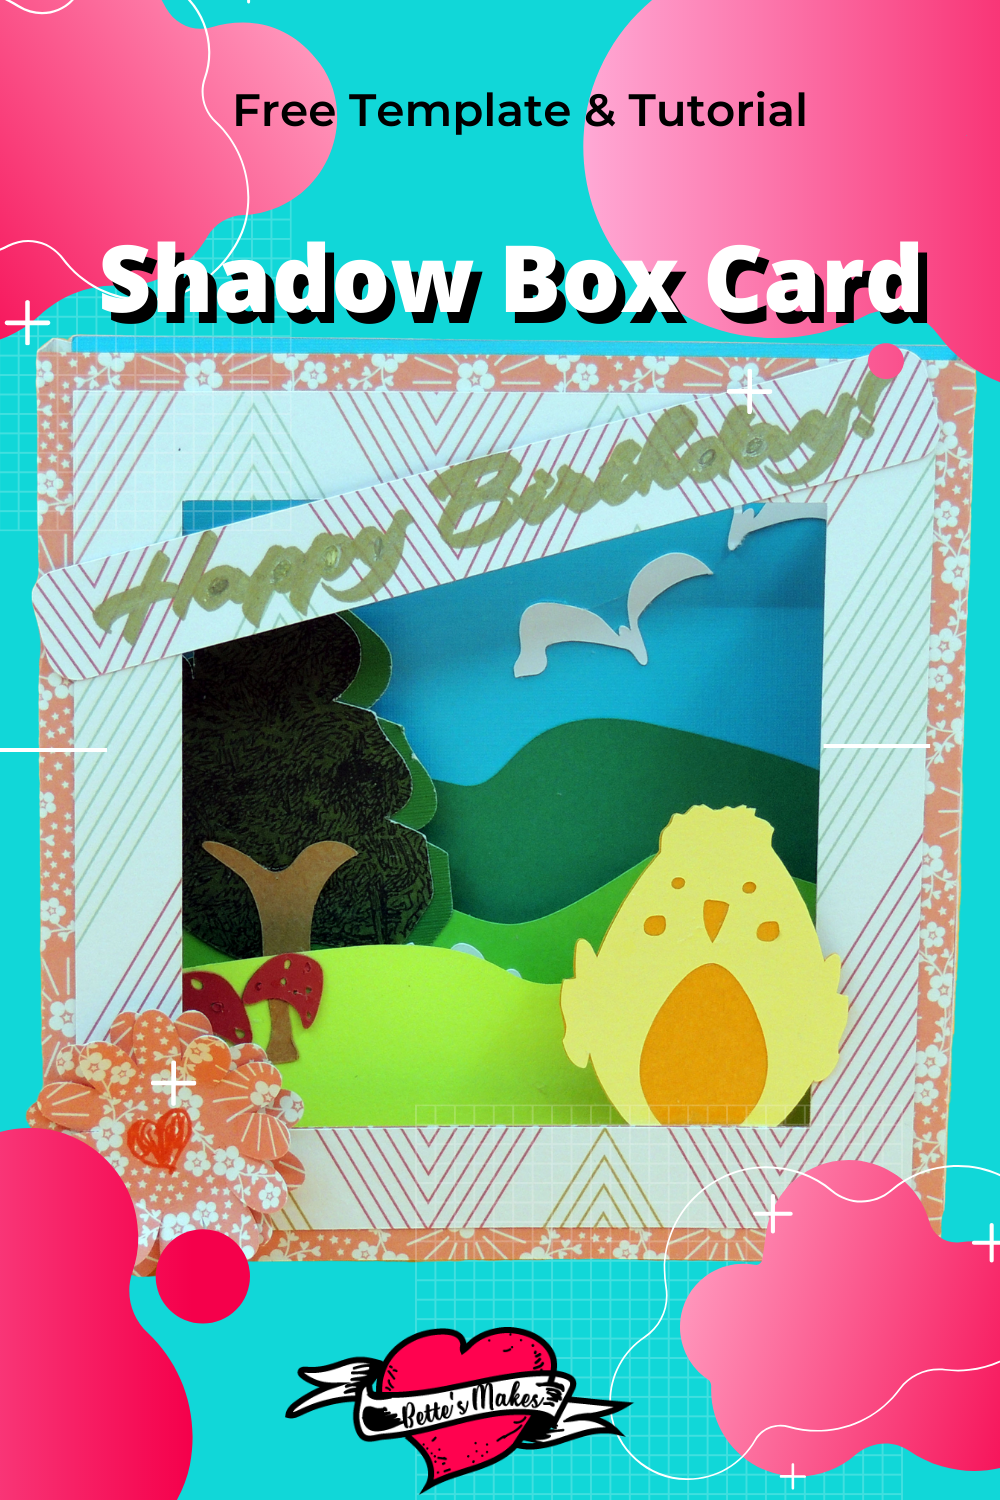 How to Make an Amazing Simple Shadow Box Card